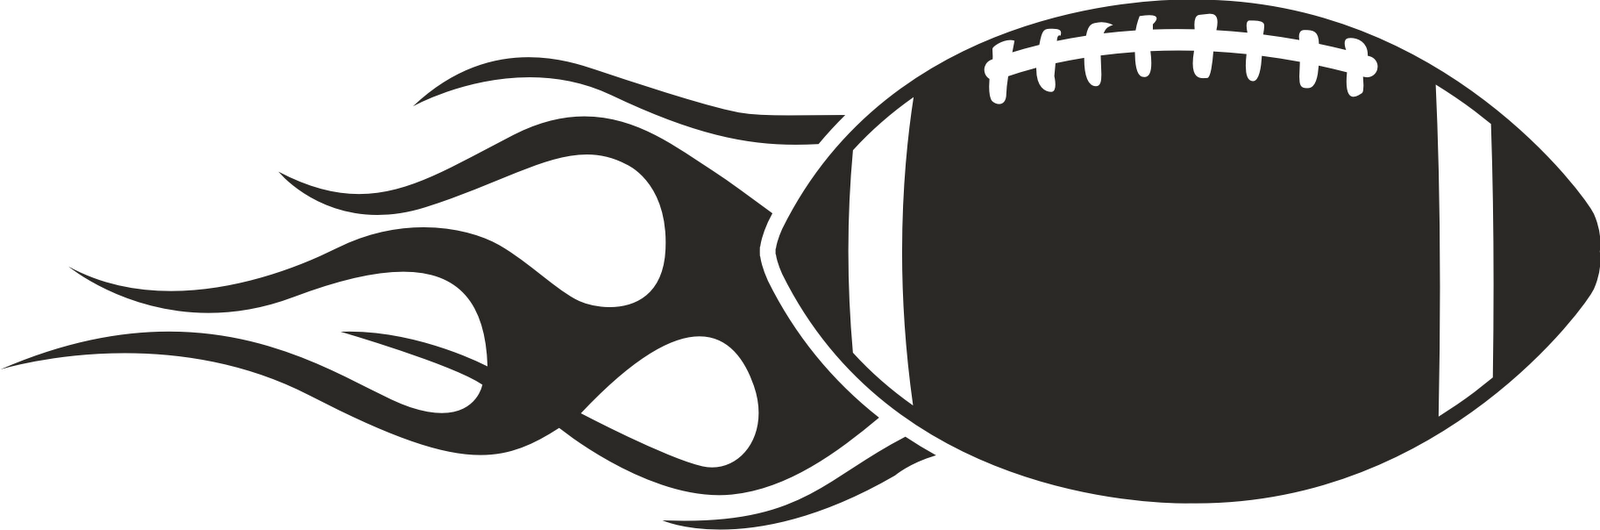 Outline Football Clipart